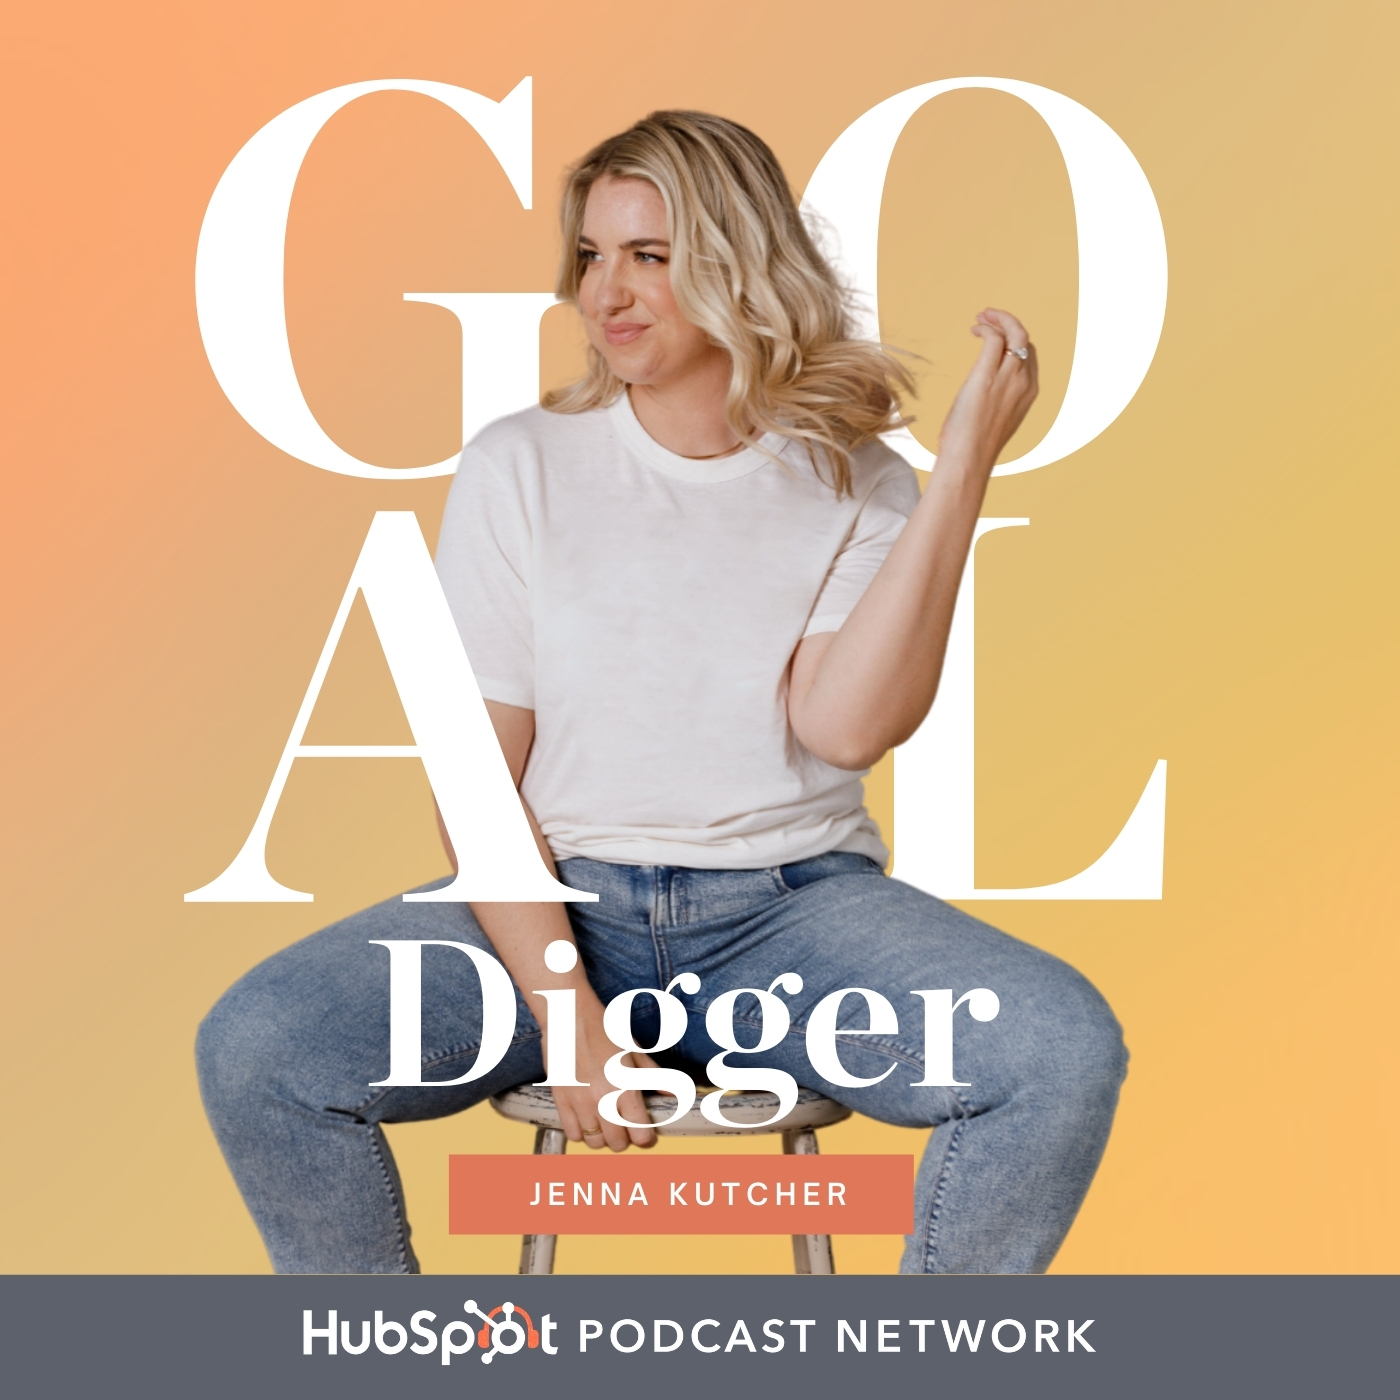 503: How to Align Your Purpose and Passion with Your Career